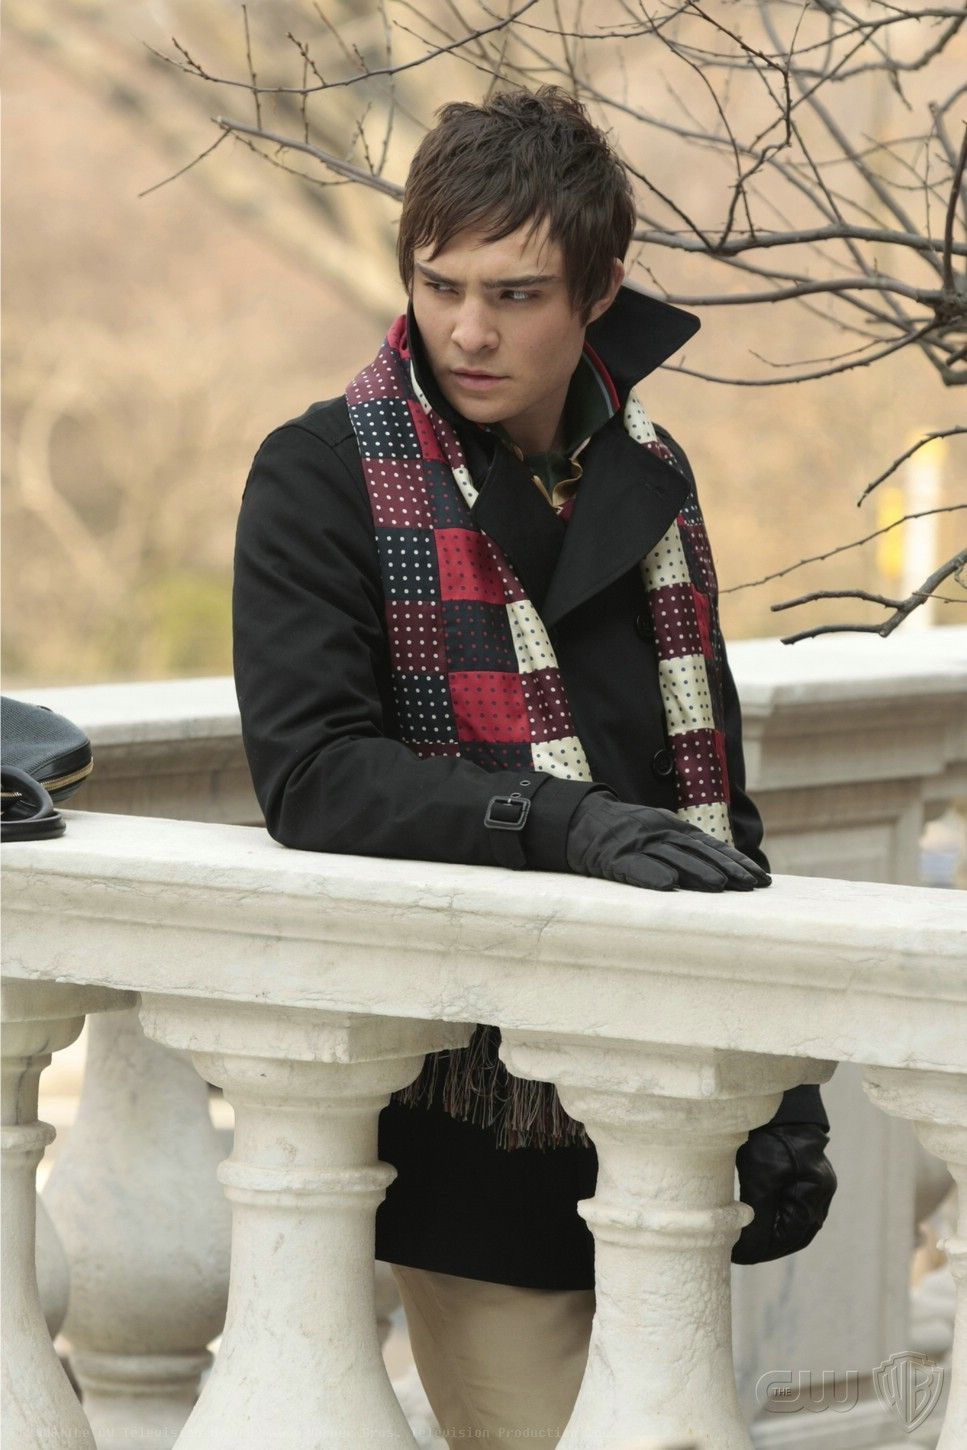 Ed Westwick as Chuck Bass with his infamous scarf.   Ed Westwick ...